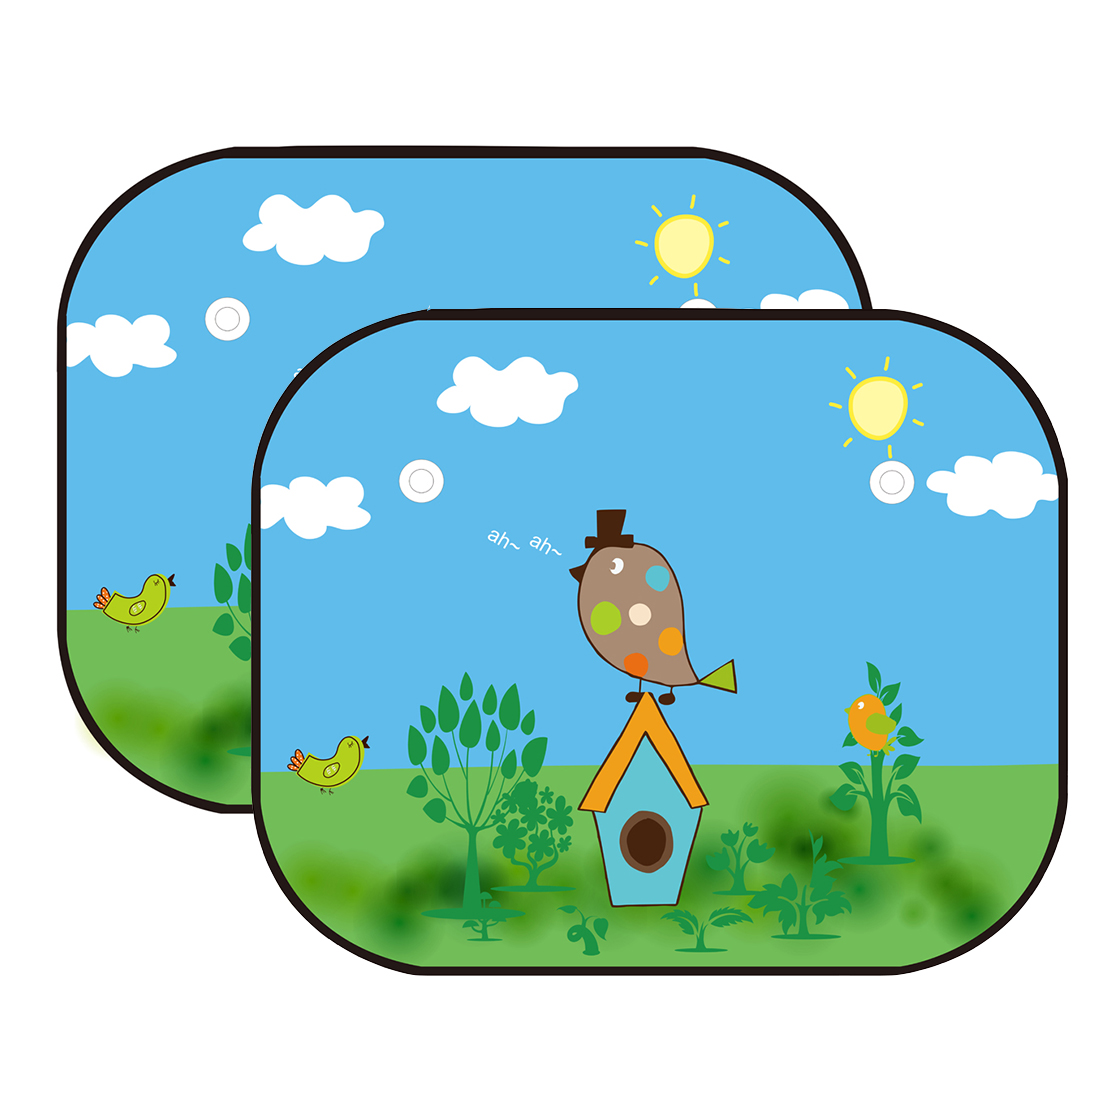 JOYREN Authorized 2 Pcs Baby Car Side Windows Sun Shades - Auto Sunshades Protector with Cartoon Bird Pattern to Block Harmful UV Rays and Heat